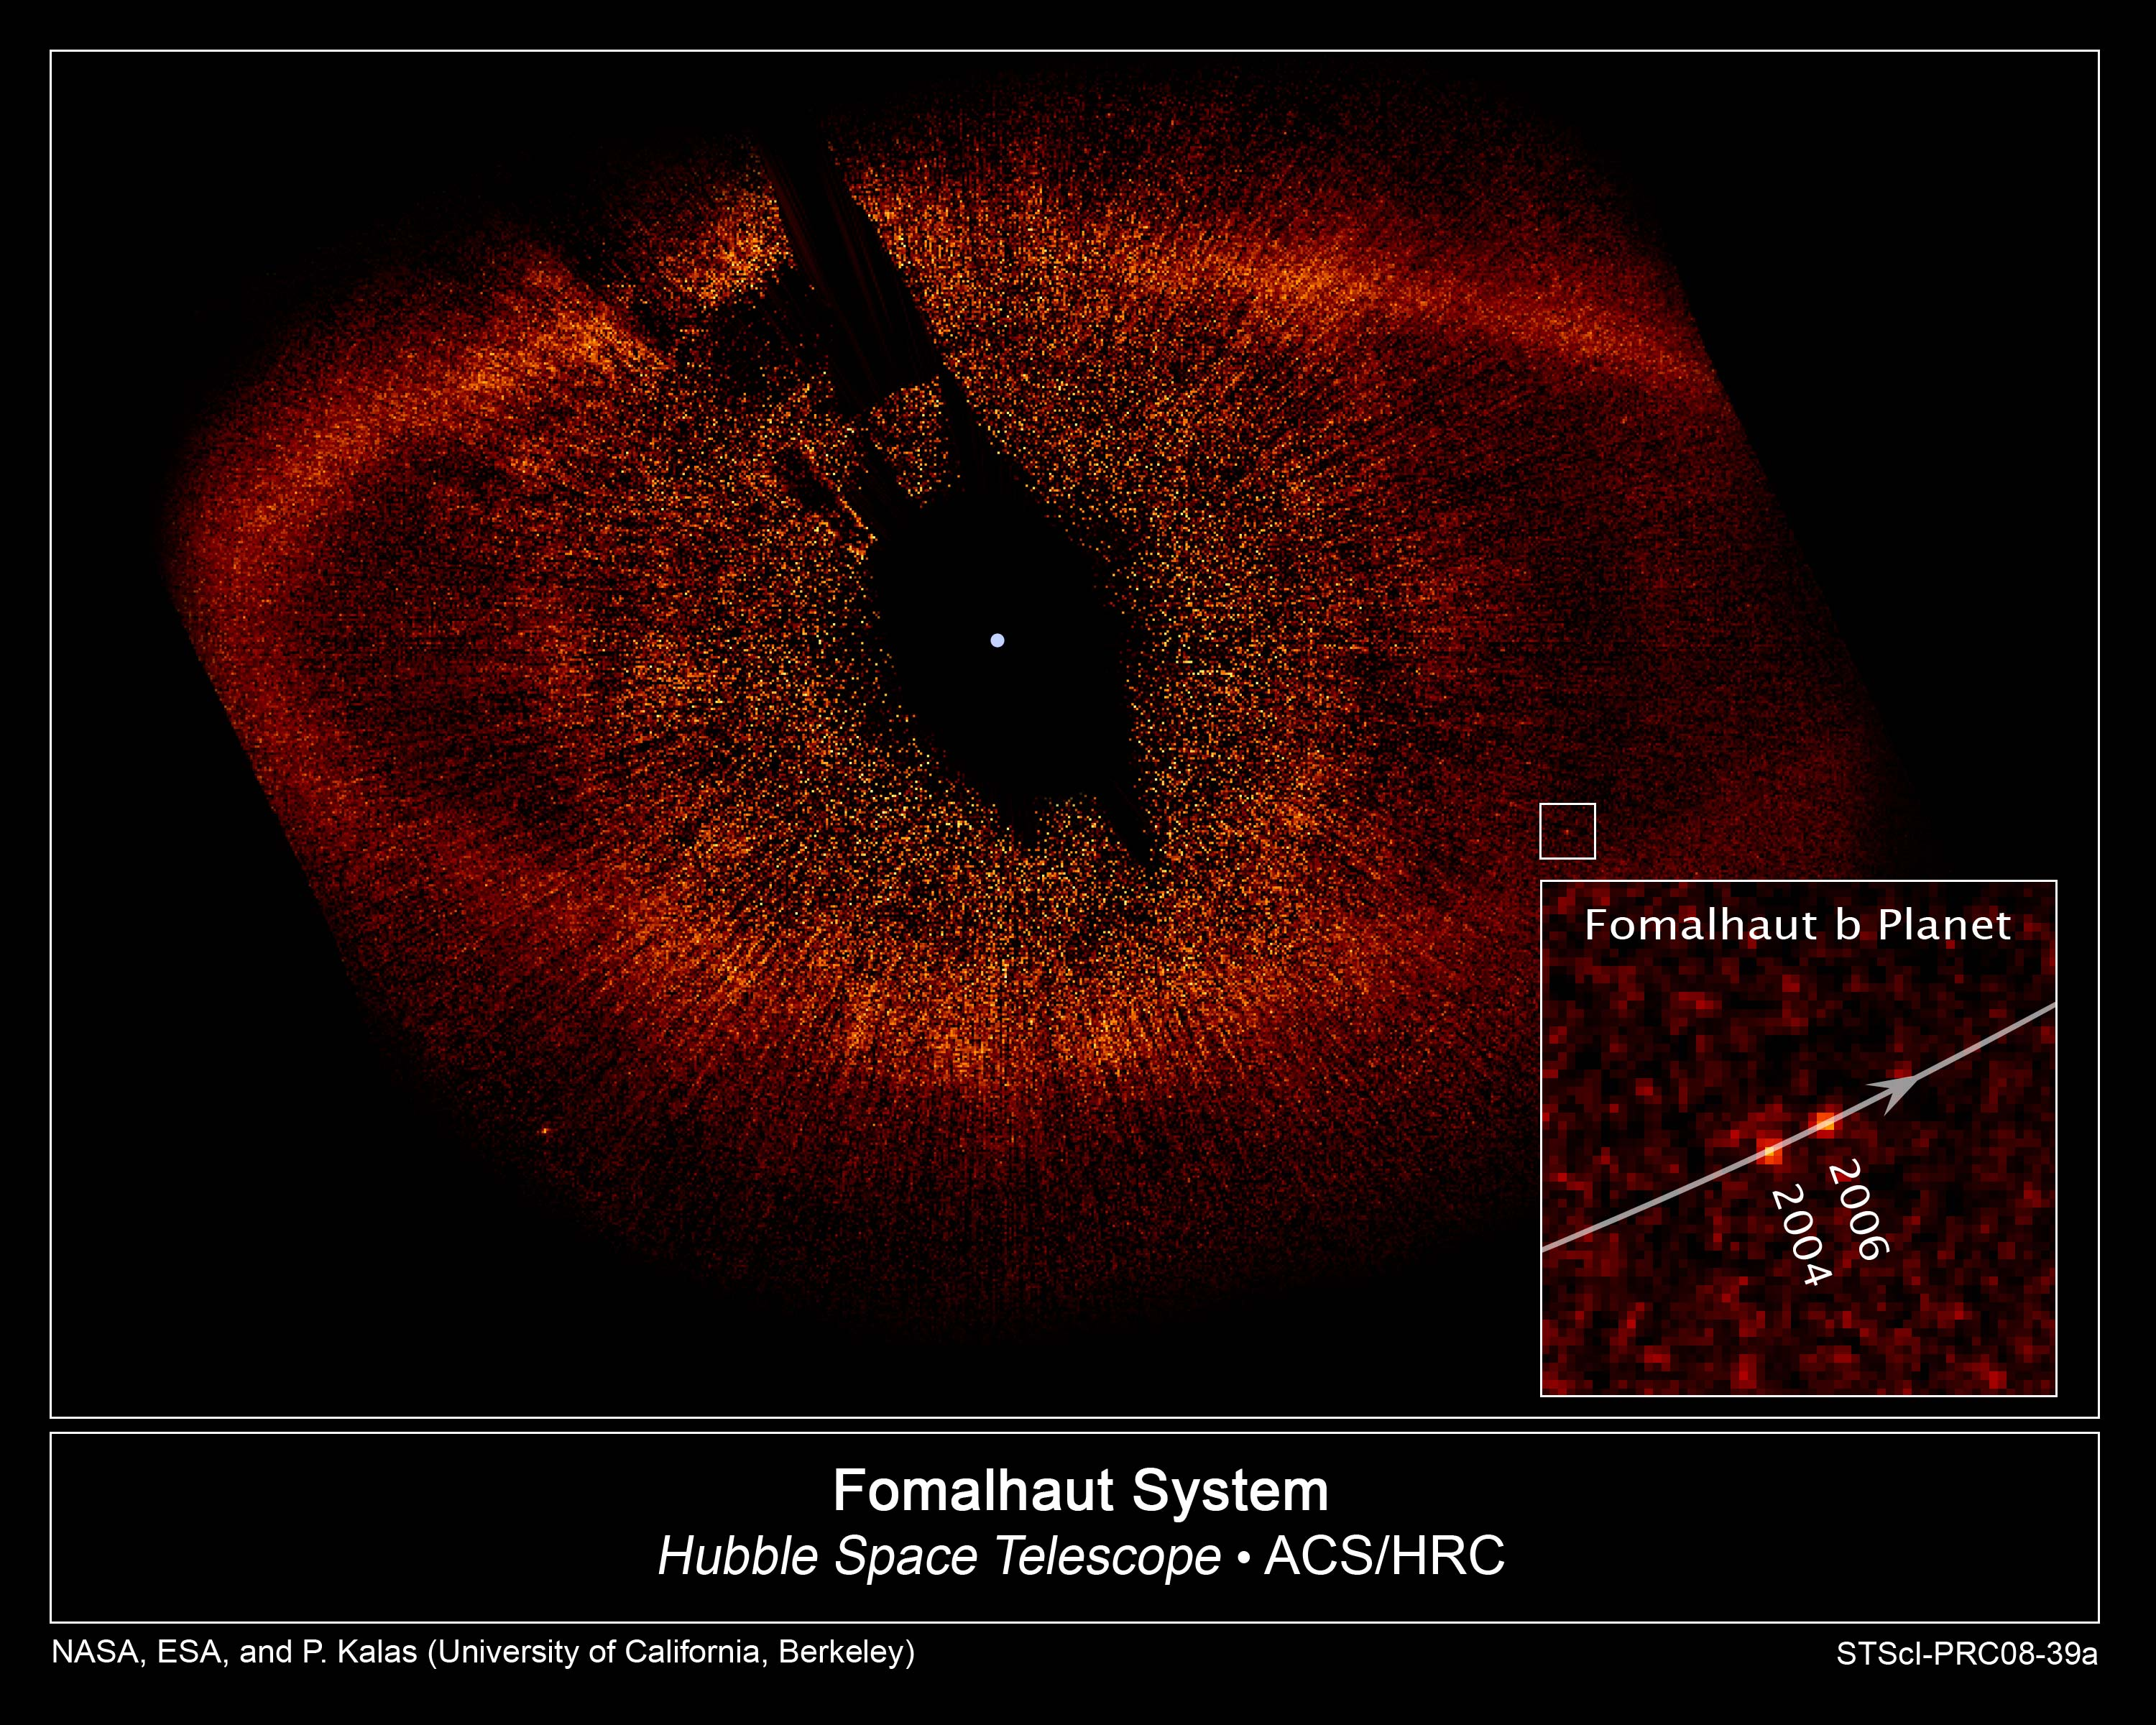 HST Image of Fomalhaut and Fomalhaut b